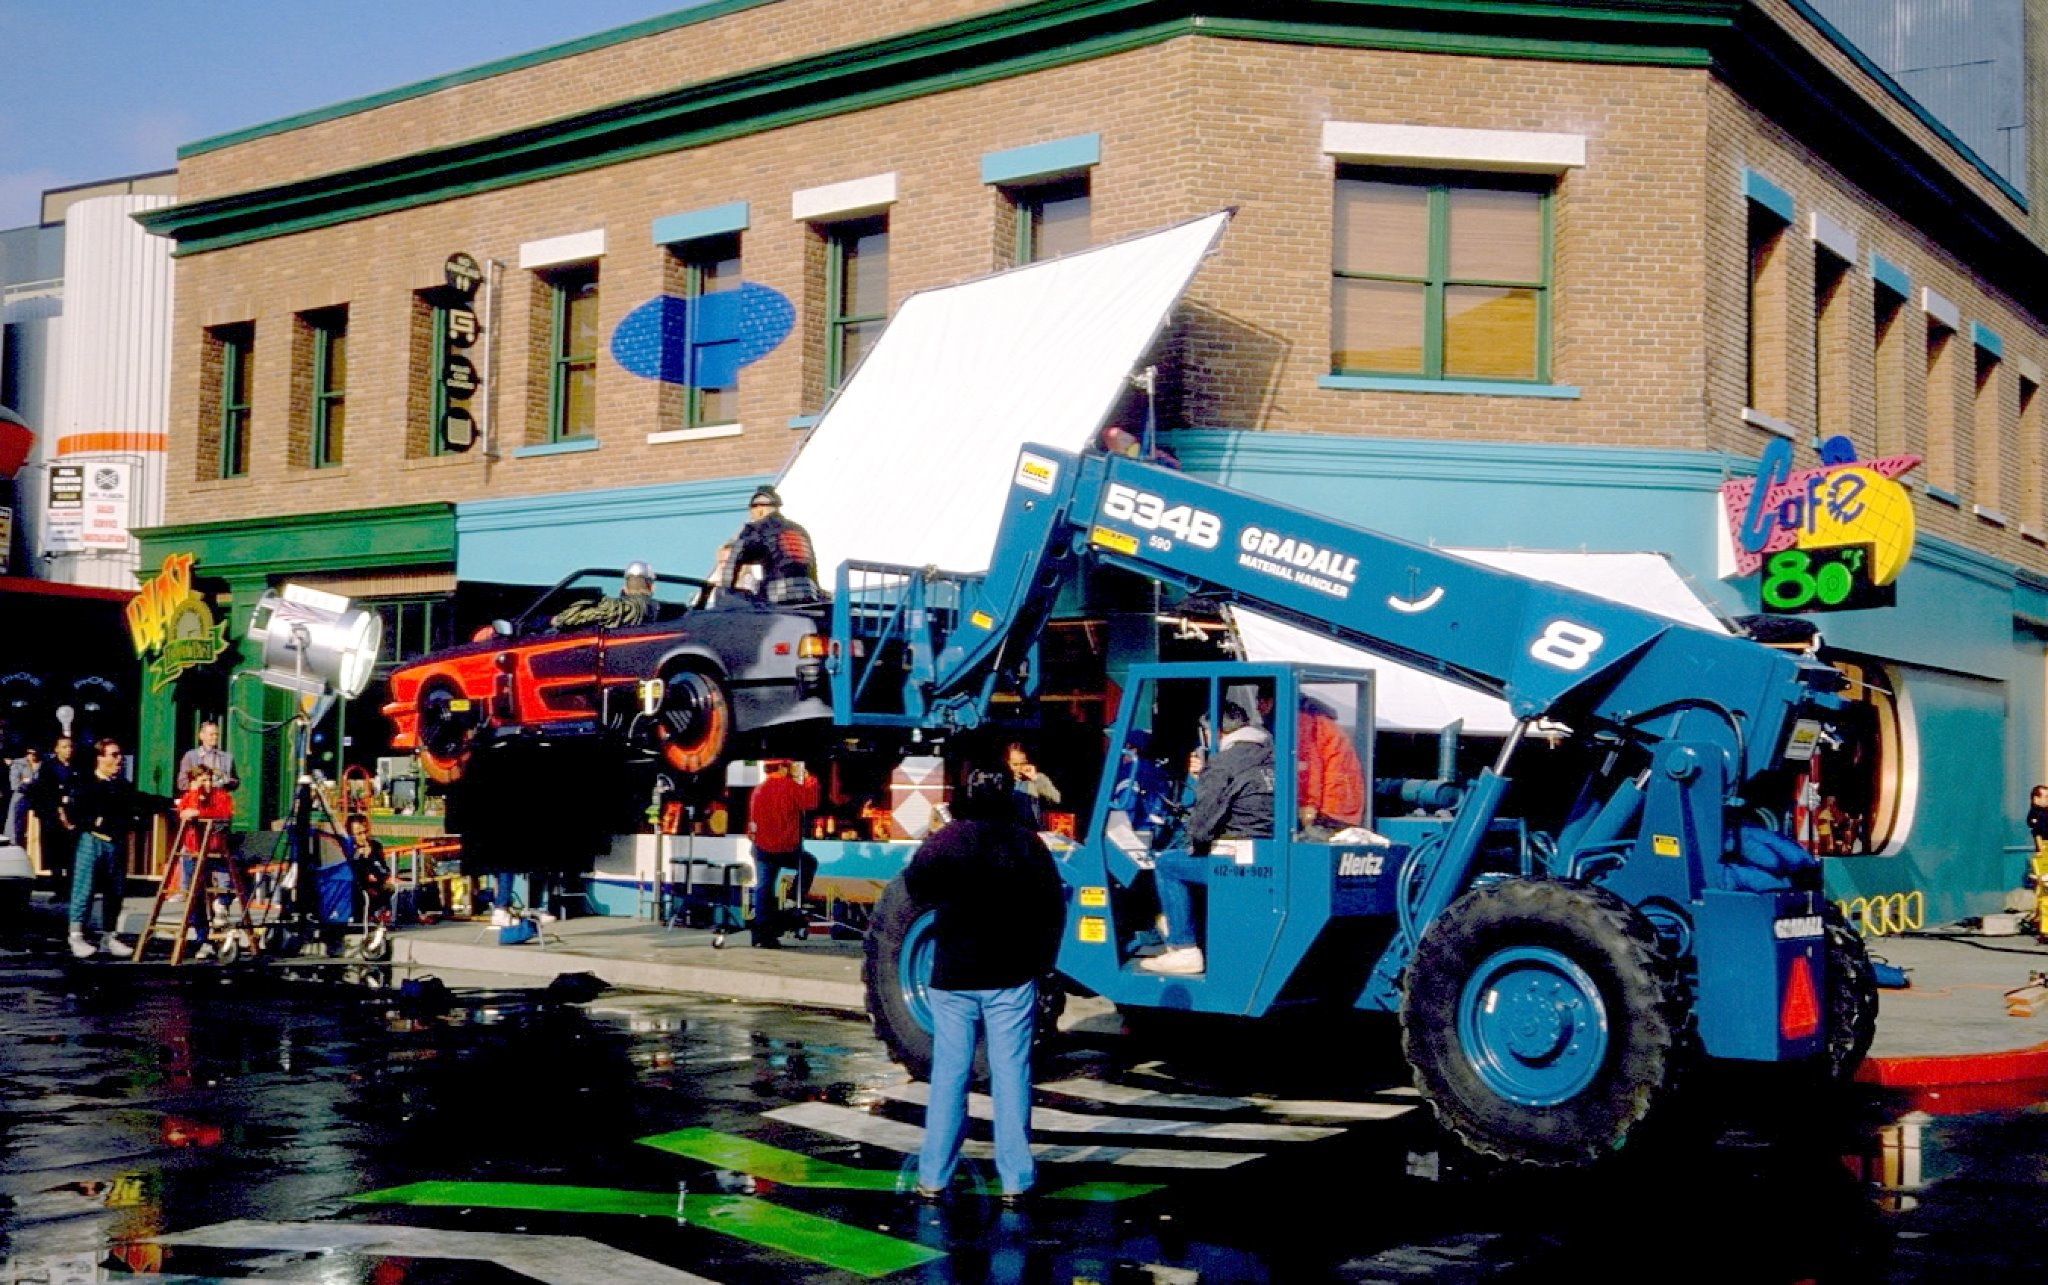 Filming on the area of Universal Studios.